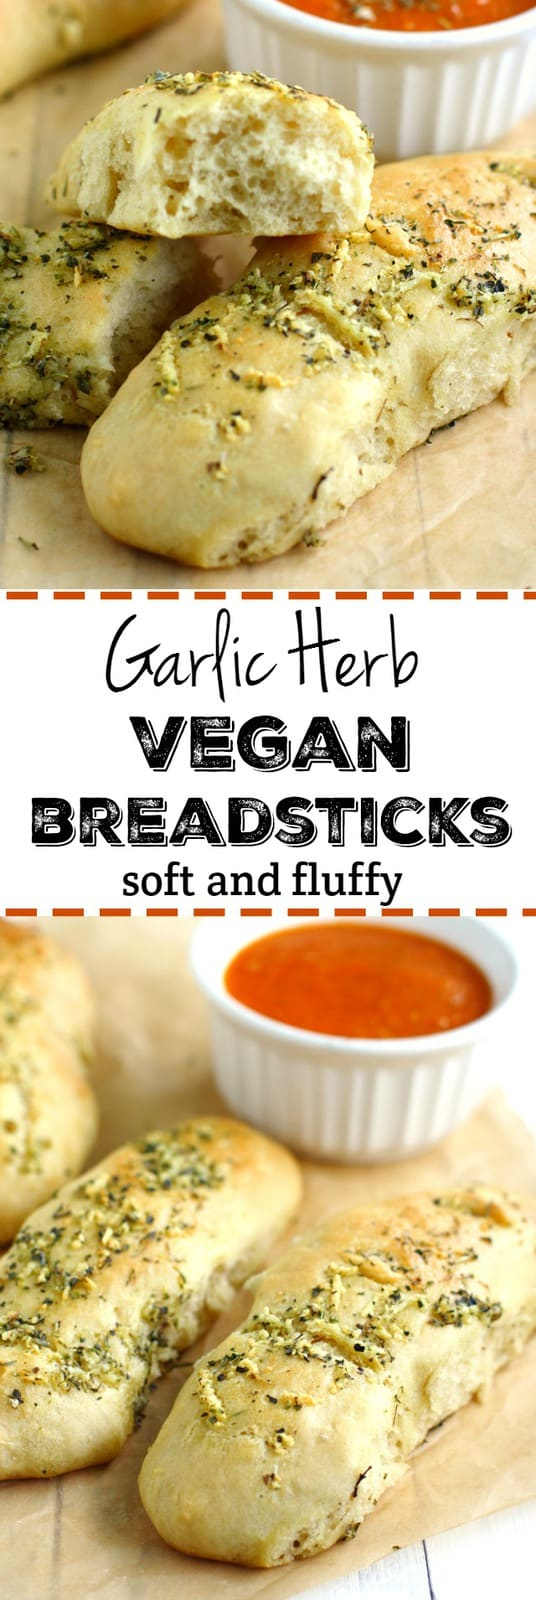 These soft and fluffy vegan garlic herb breadsticks are easy to make in a hurry! They are just right with pasta or soup and salad. A family favorite! #vegan #dairyfree